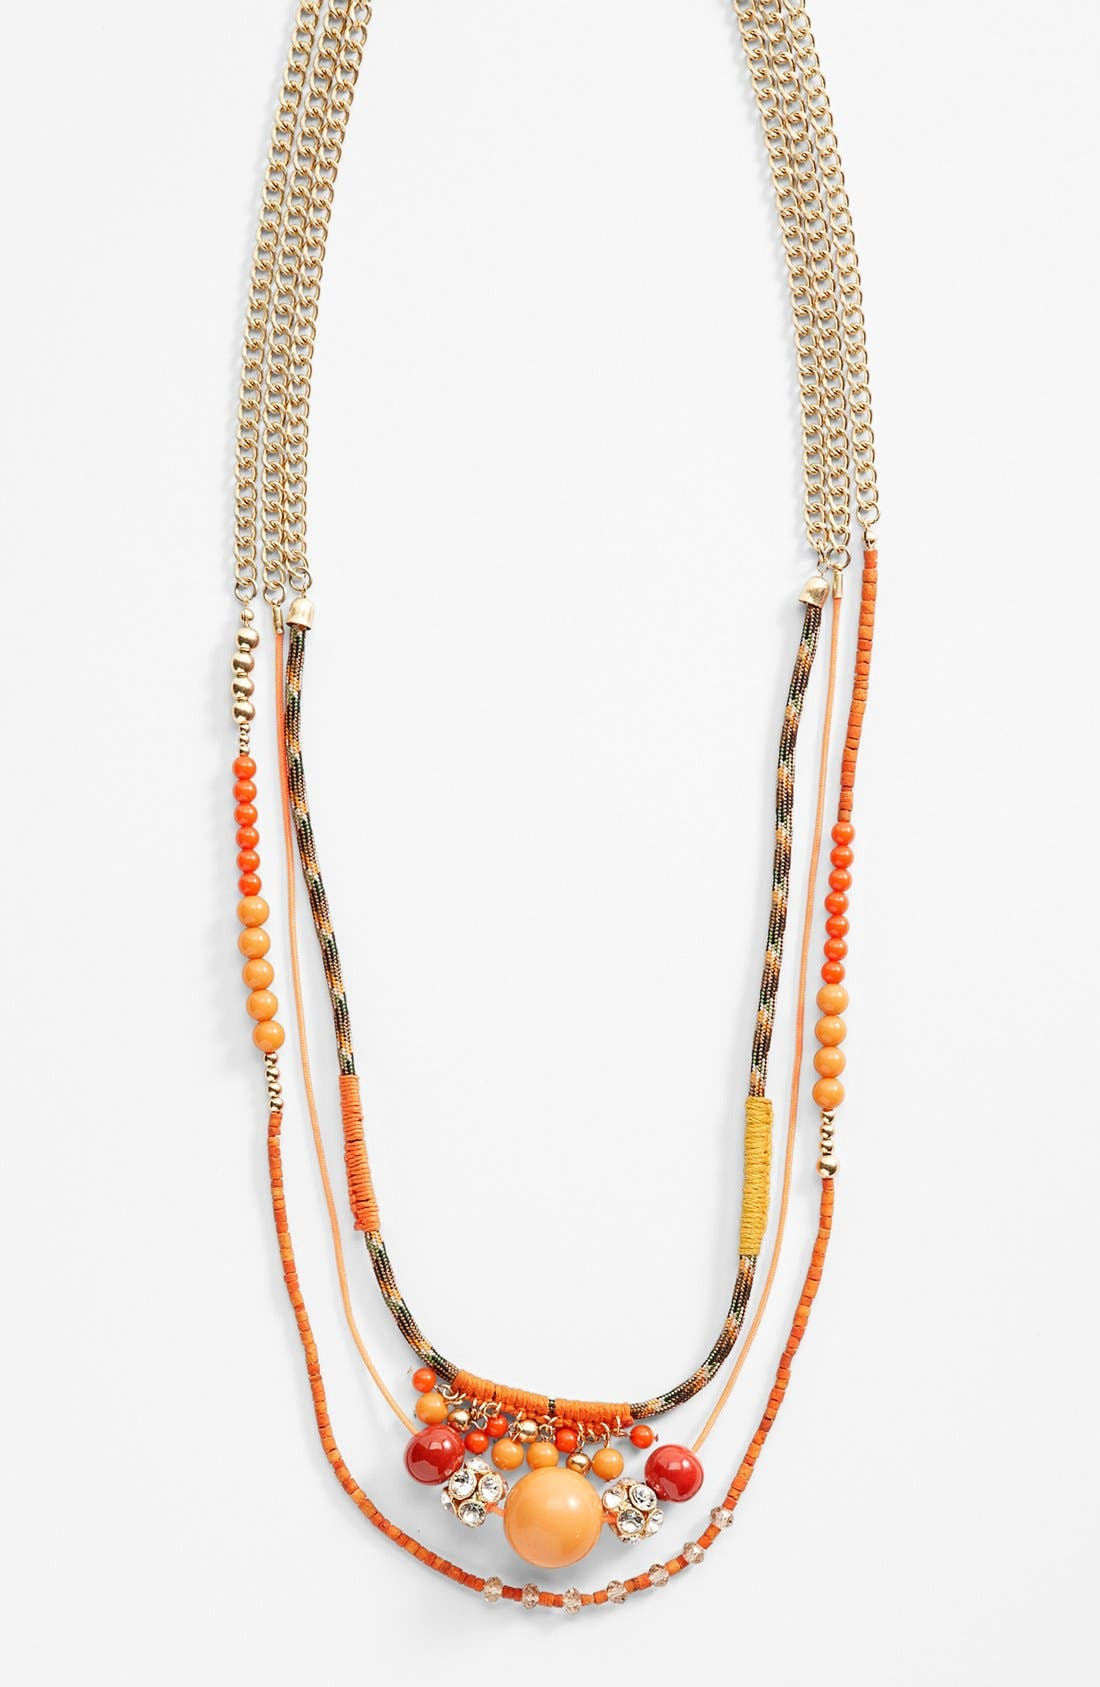 Alternate Image 1 Selected - Lydell NYC Mixed Media Multistrand Necklace